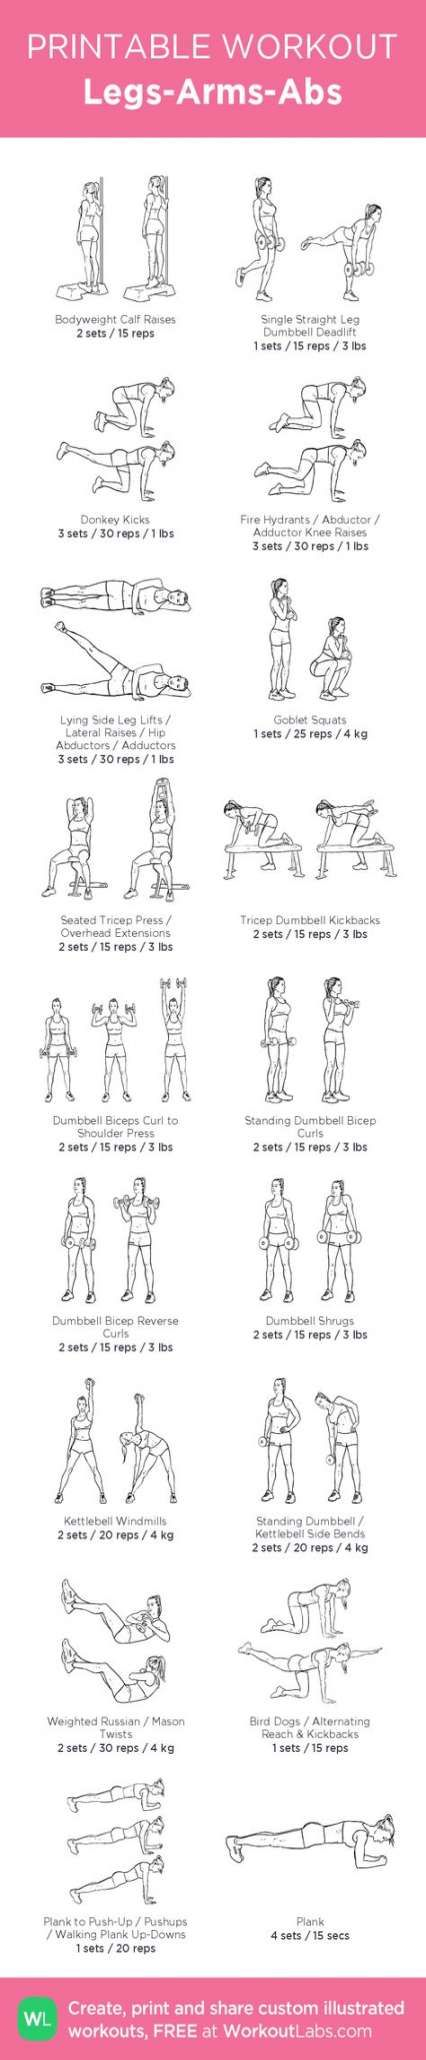 24 Best Ideas For Fitness Model Workout Routine Gym #fitness